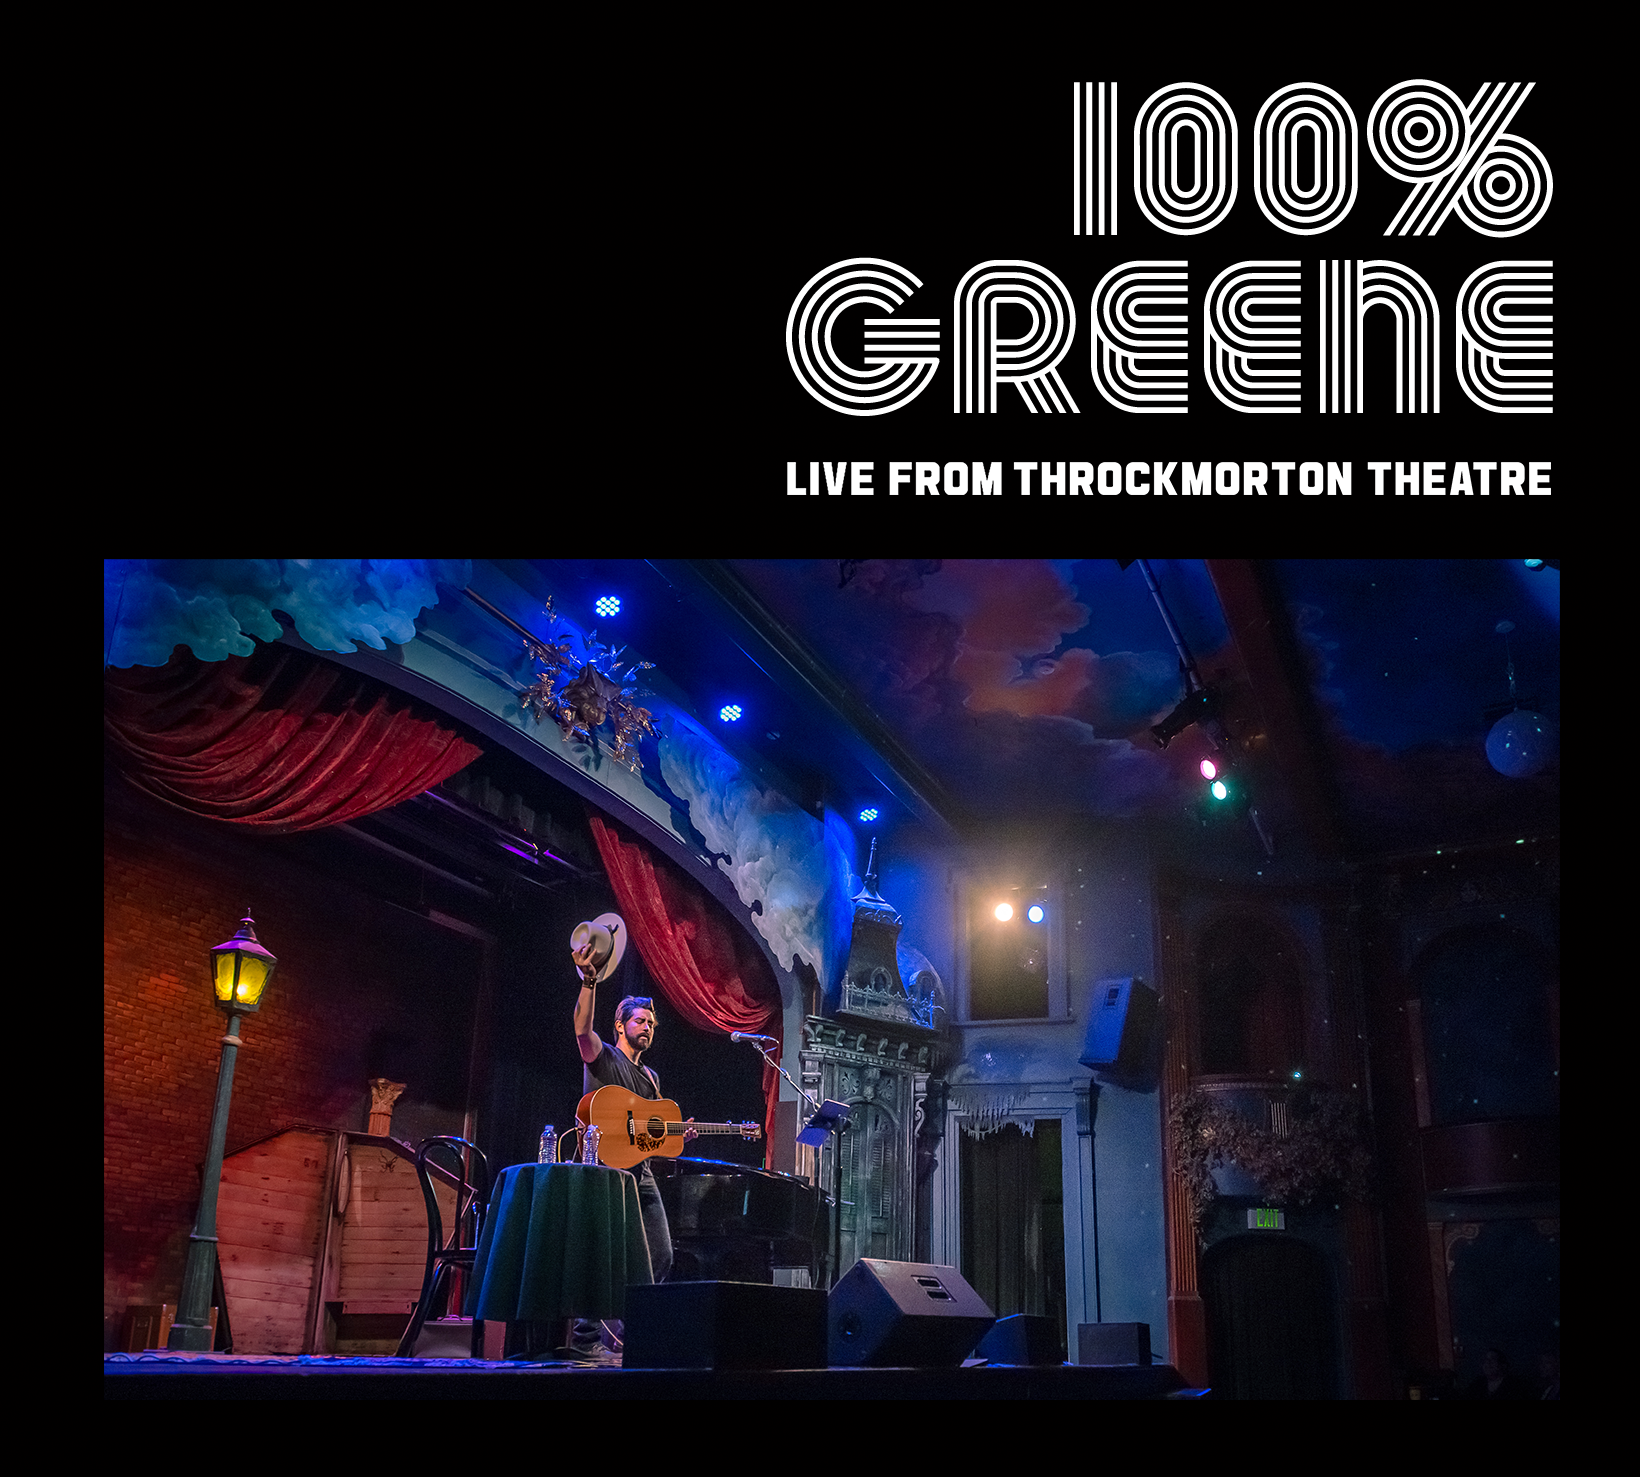 Jackie-Greene_100%-Greene-Live-From-Throckmorton-Theatre.png